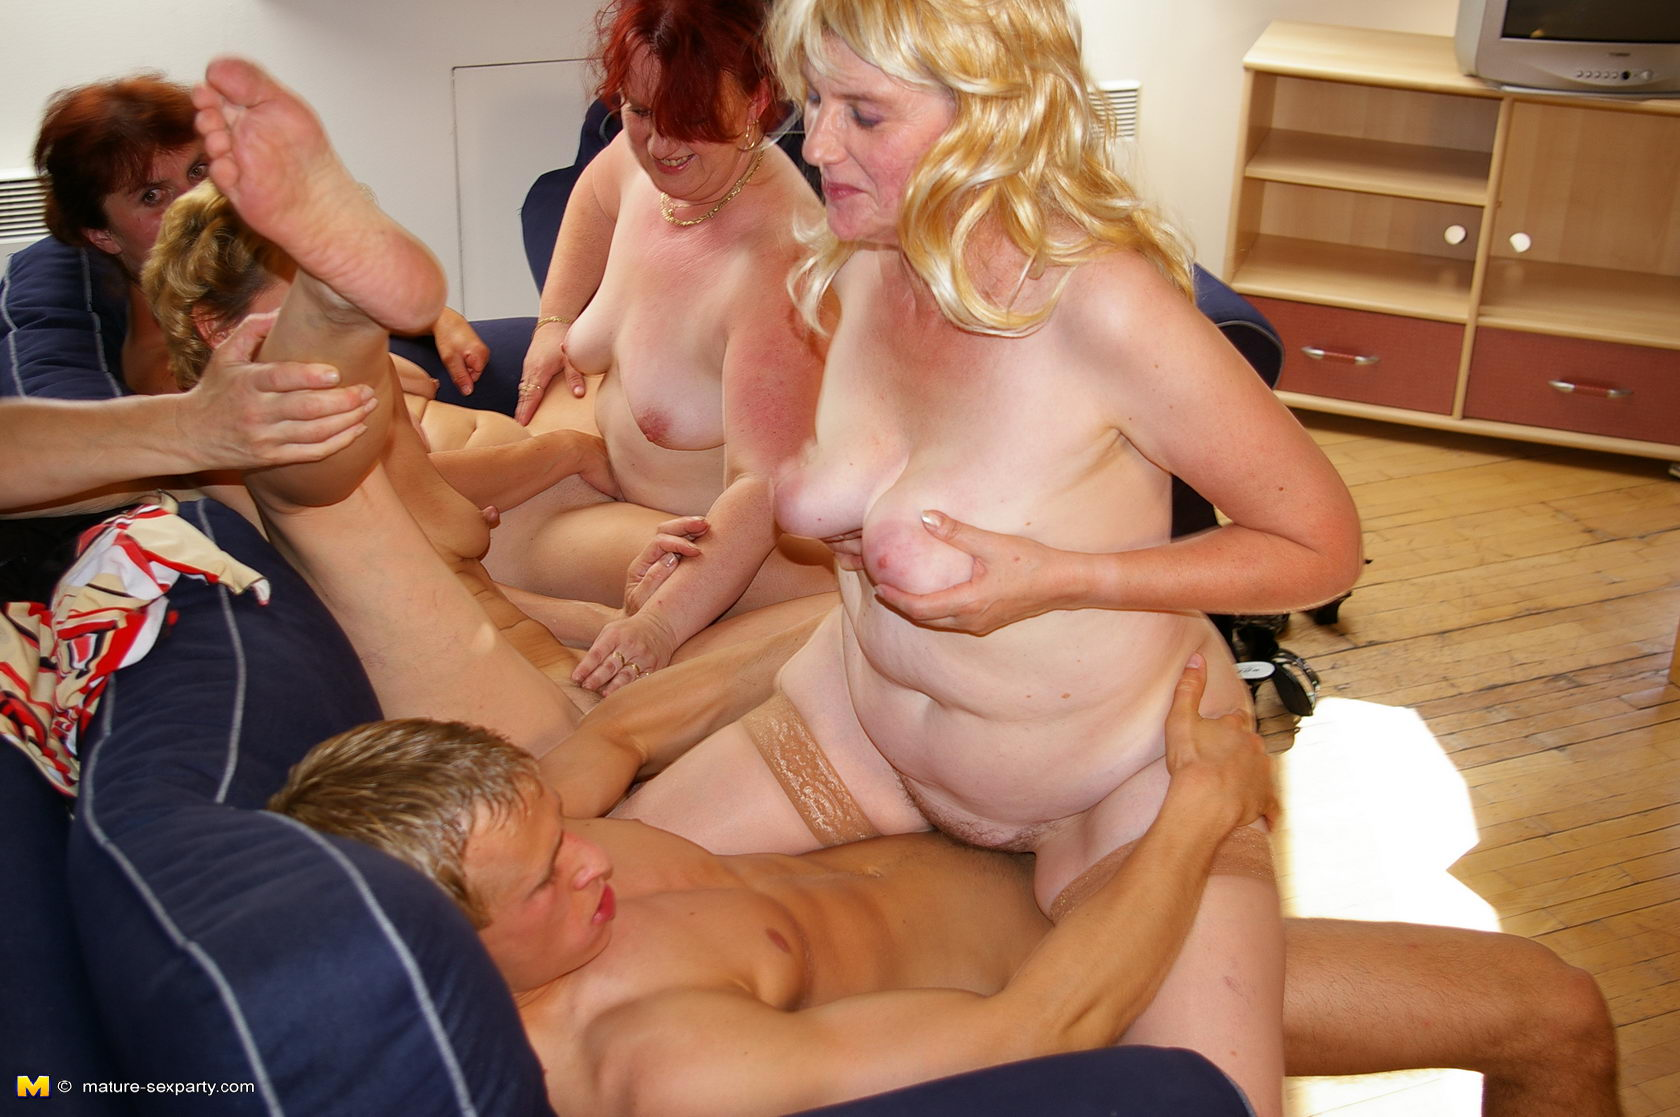 sex party private pics